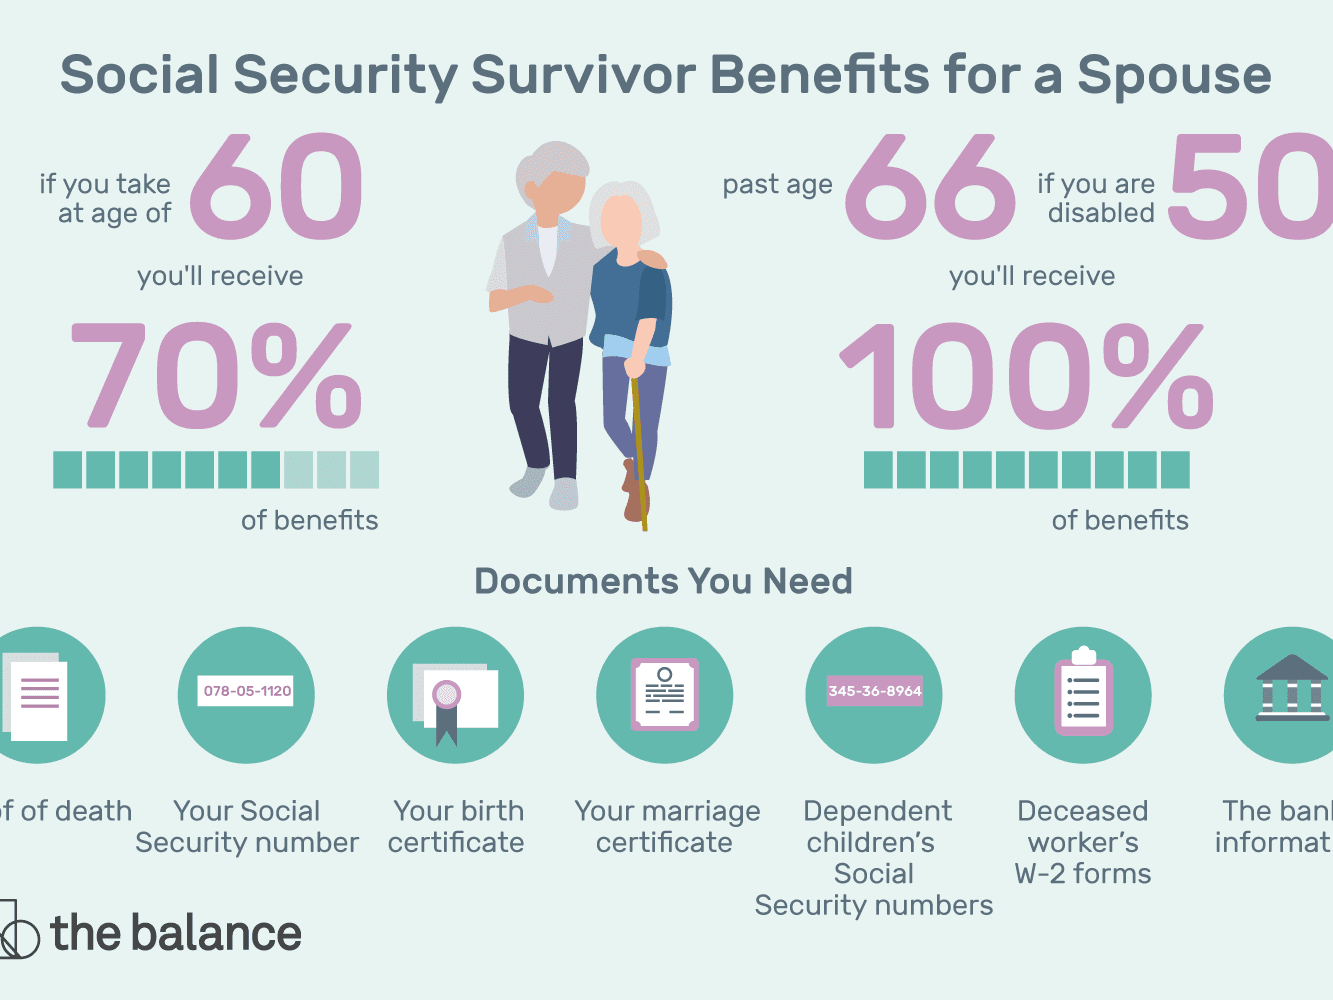 Social Security Survivor Benefits for a Spouse